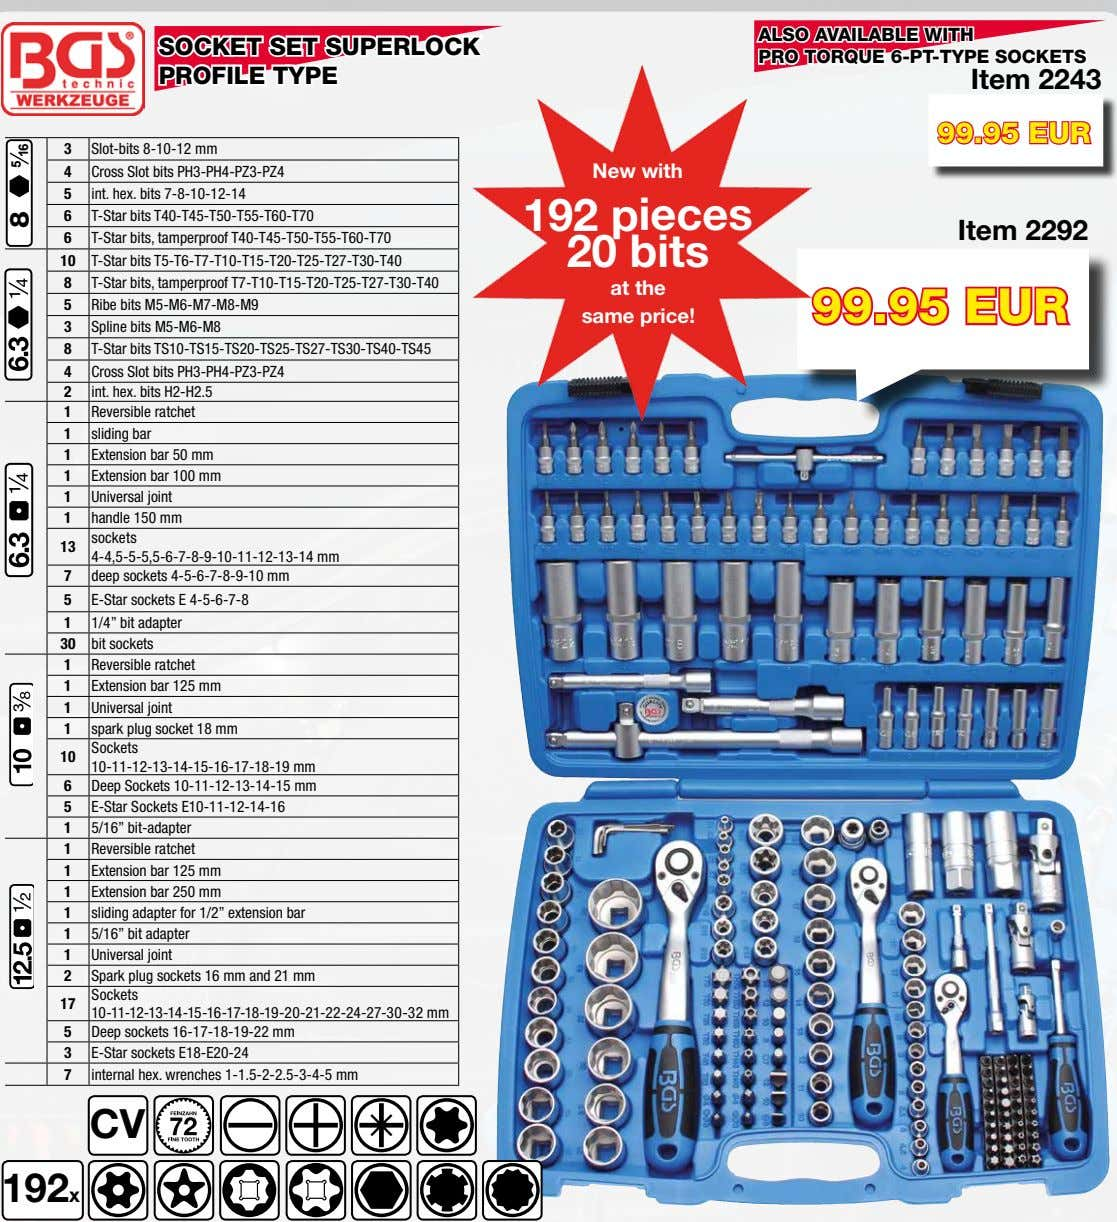 ALSO AVAILABLE WITH SOCKET SET SUPERLOCK PRO TORQUE 6-PT-TYPE SOCKETS PROFILE TYPE Item 2243 99.95